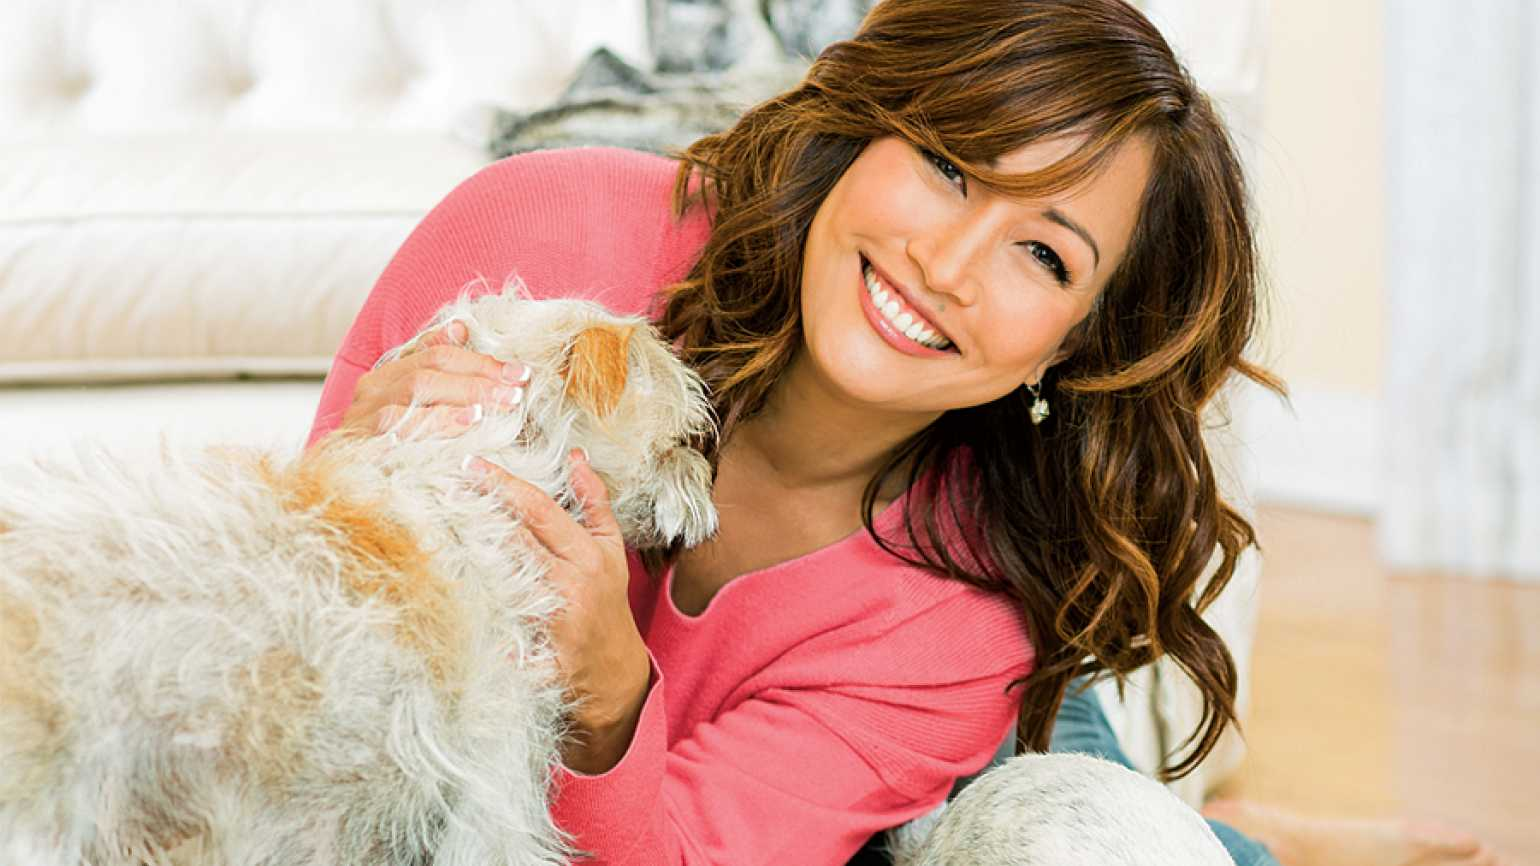 Carrie Ann Inaba with her pals Buddy and Lola